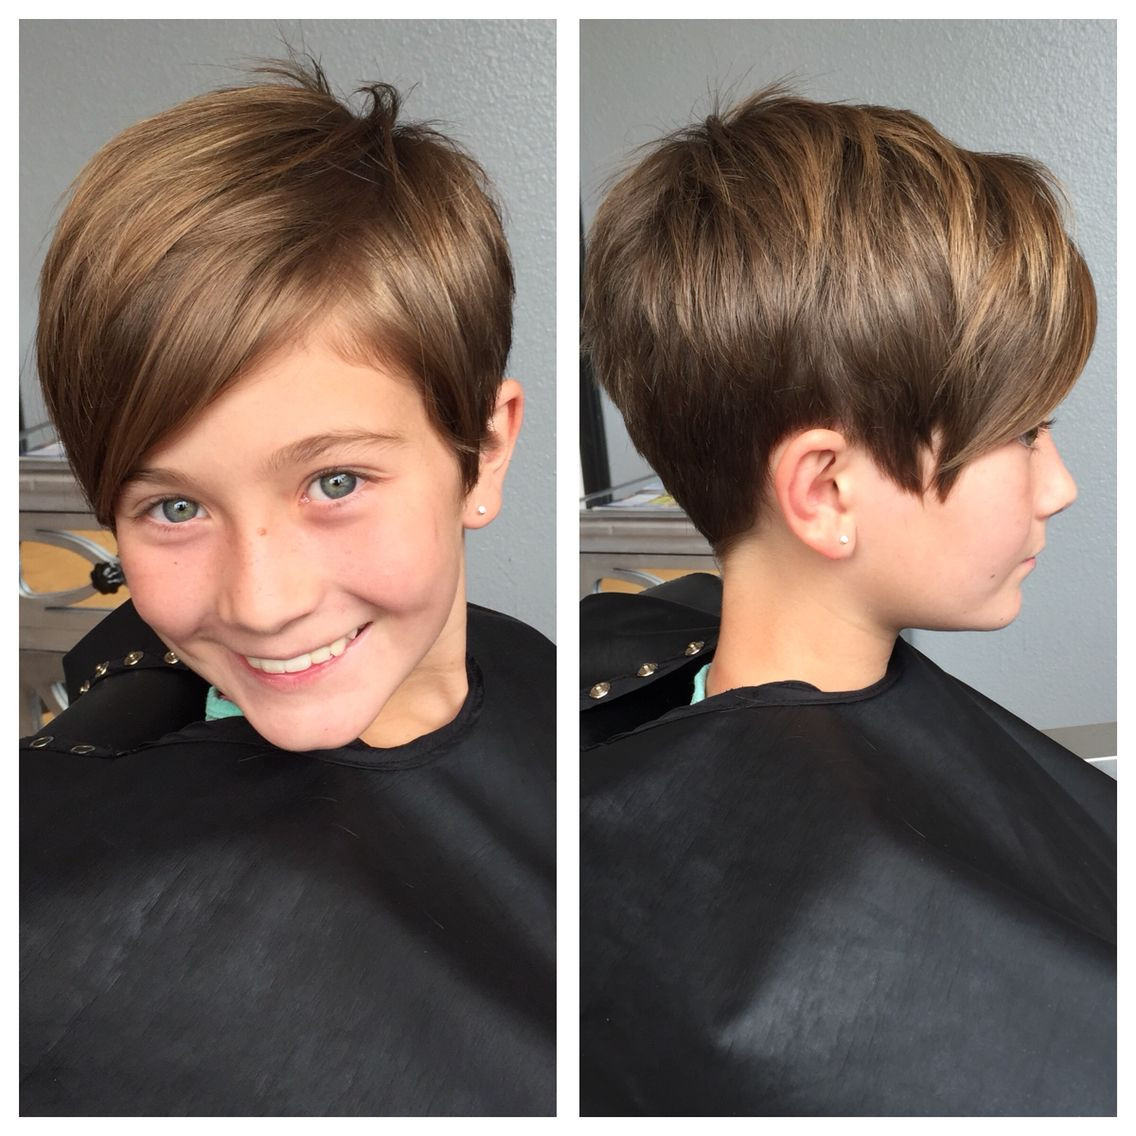 Best ideas about Pixie Haircuts For Kids . Save or Pin Kids pixie haircut Hair Now.